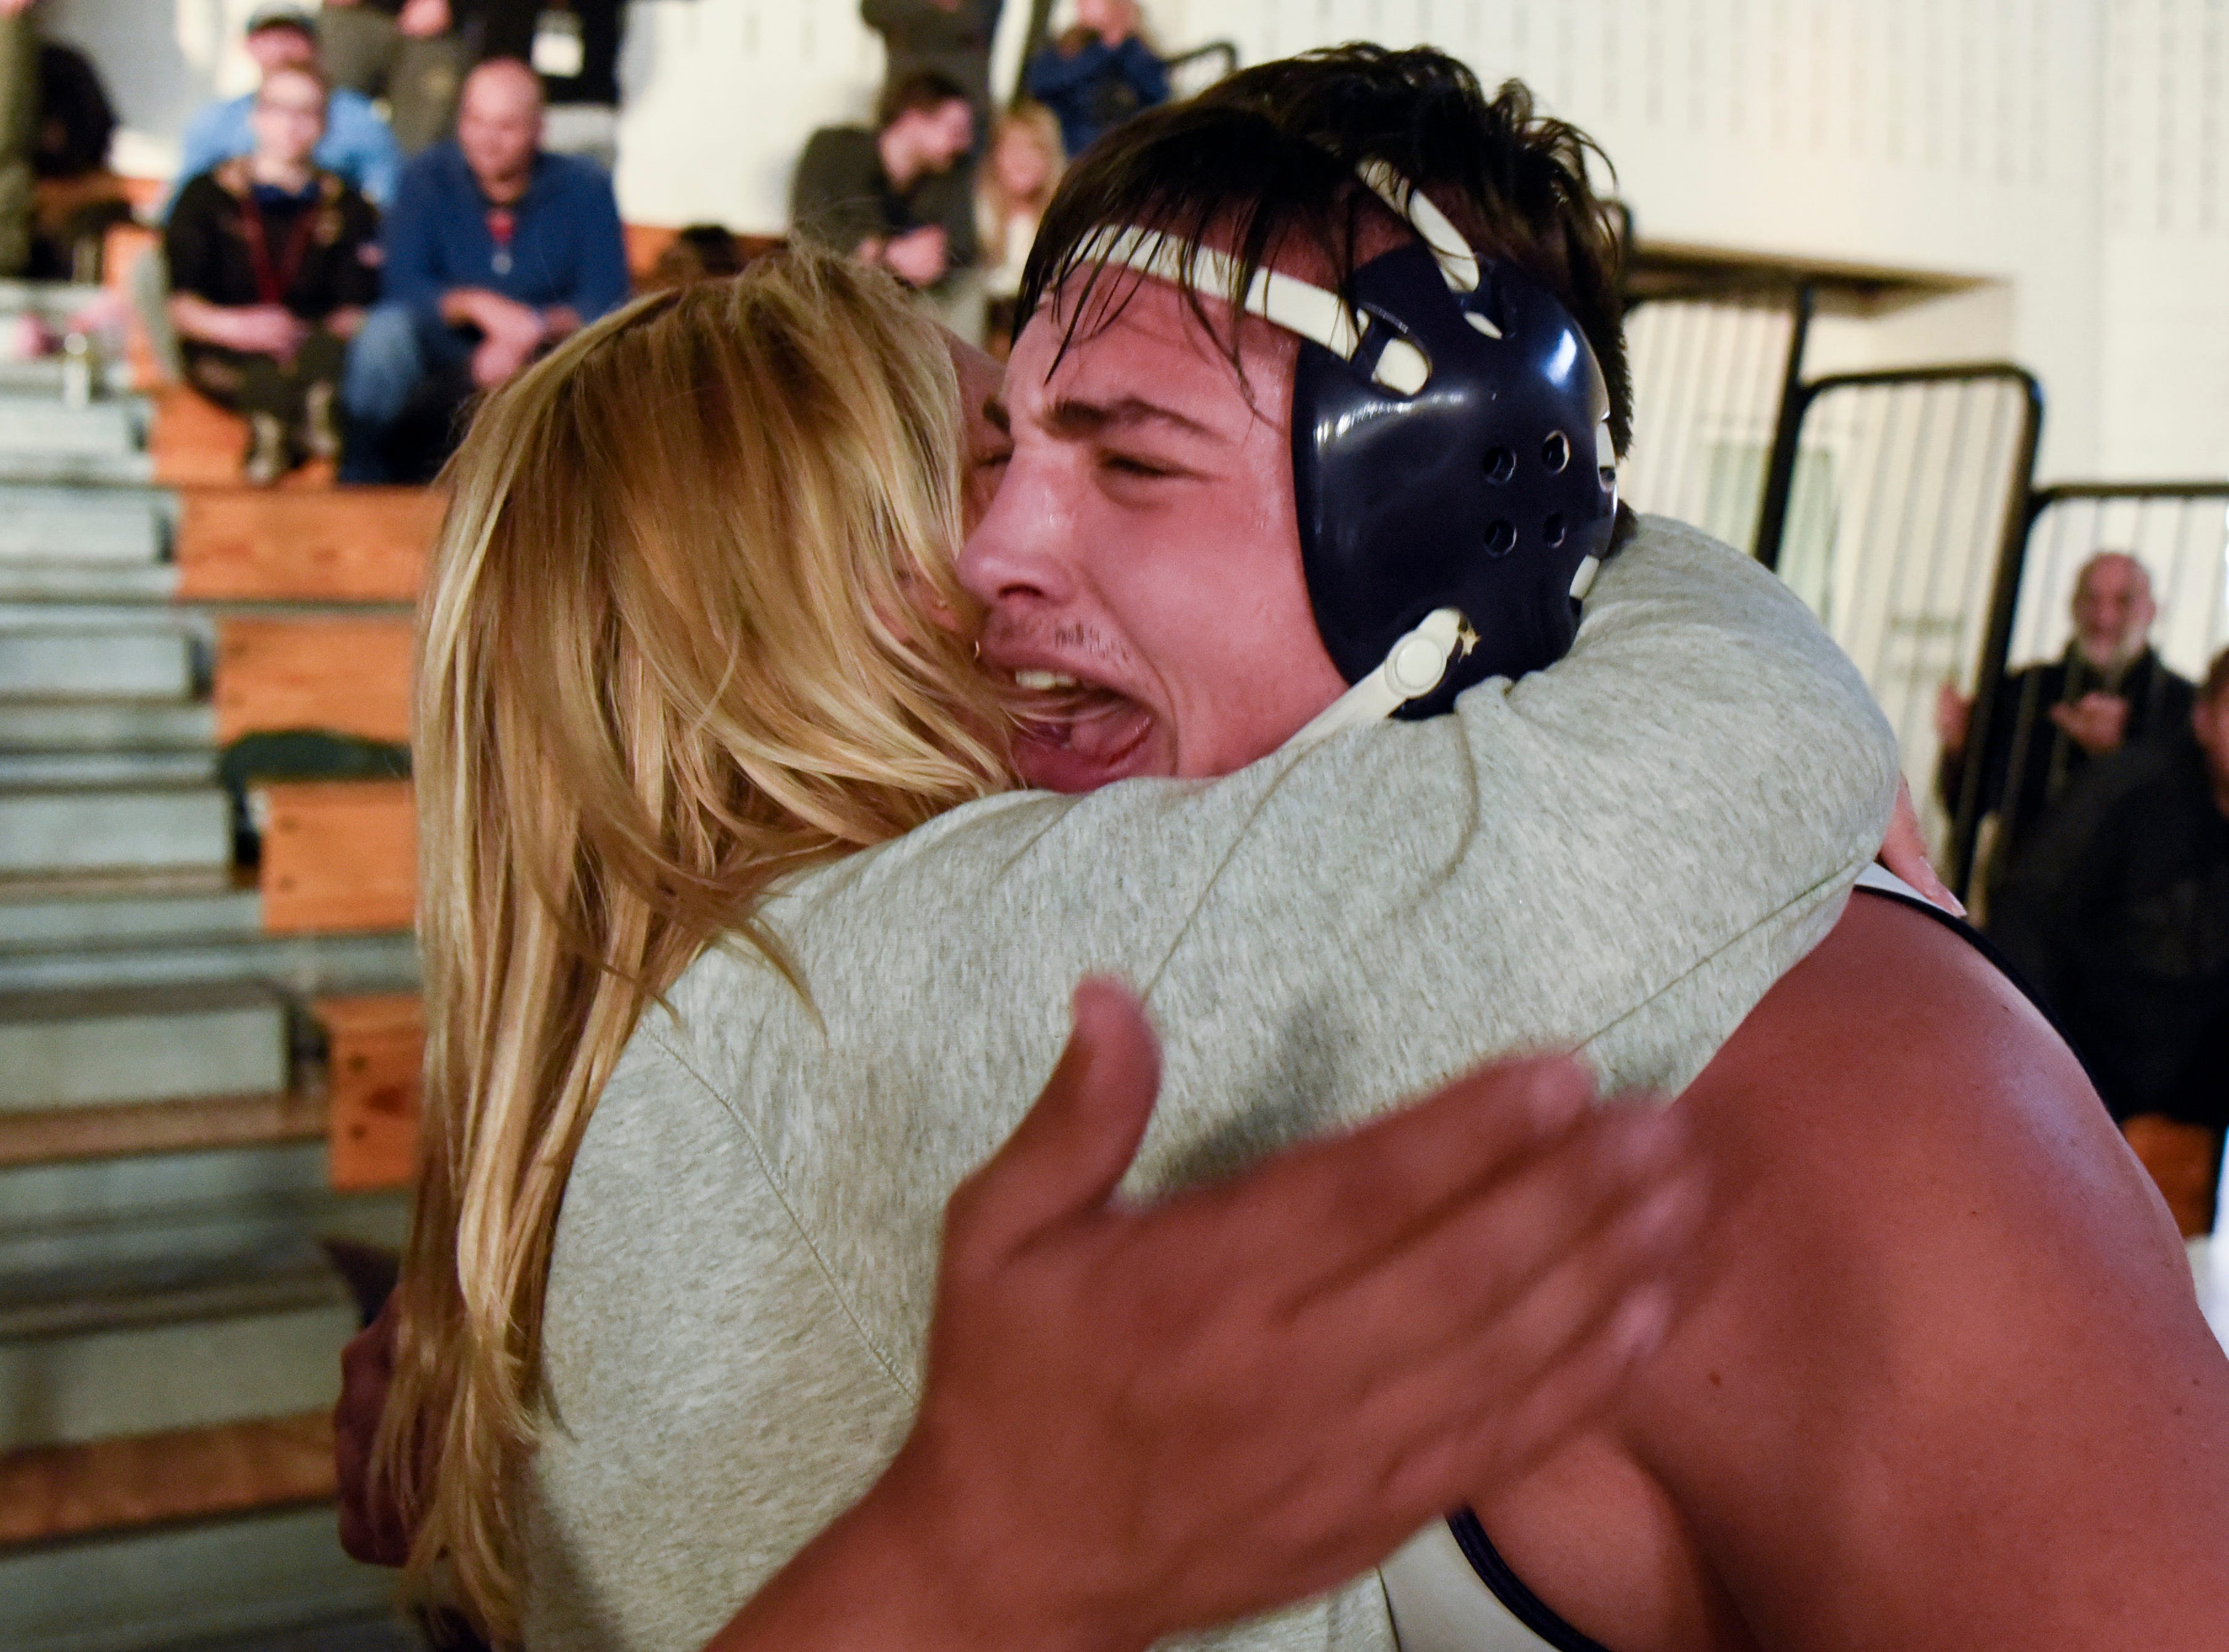 Michael Filieri of Garfield, right, hugs his mom Frances Filieri after winning the 220-pound title at the Sam Cali Battle for the Belt final on Sunday, Jan. 6, 2019, in West Orange.